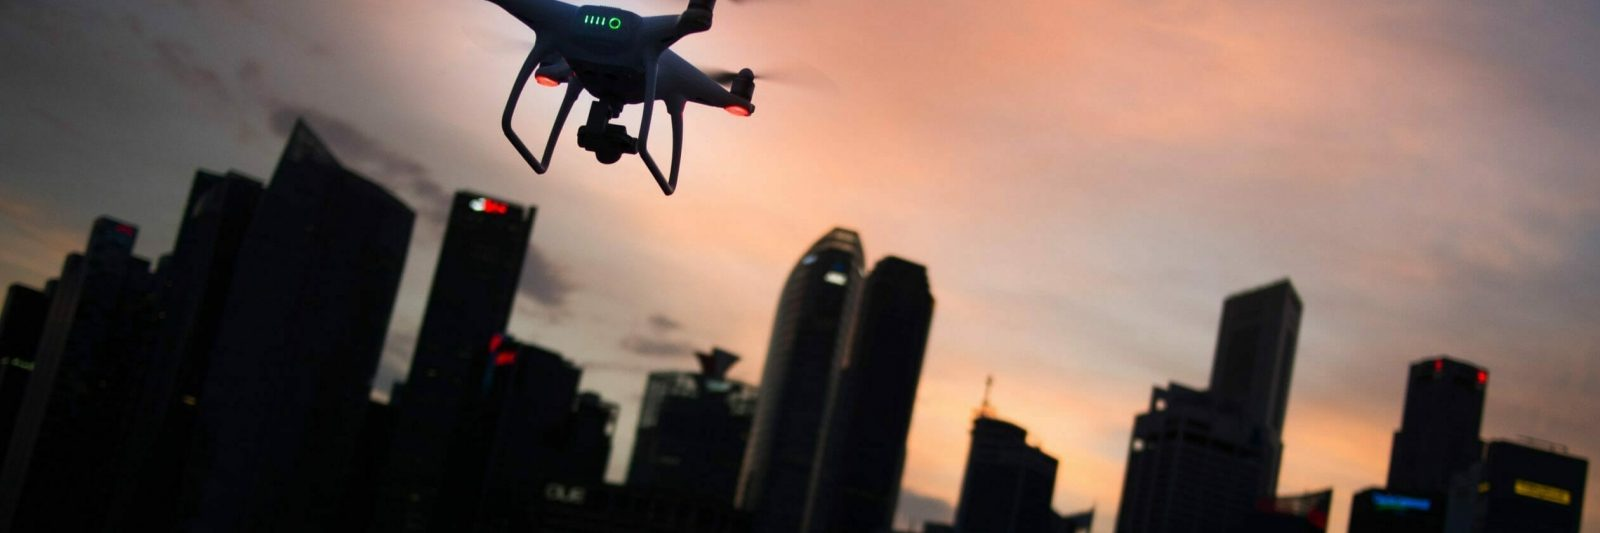 Chinese Manufactured Drone Application Might Be Spying On Us Citizens